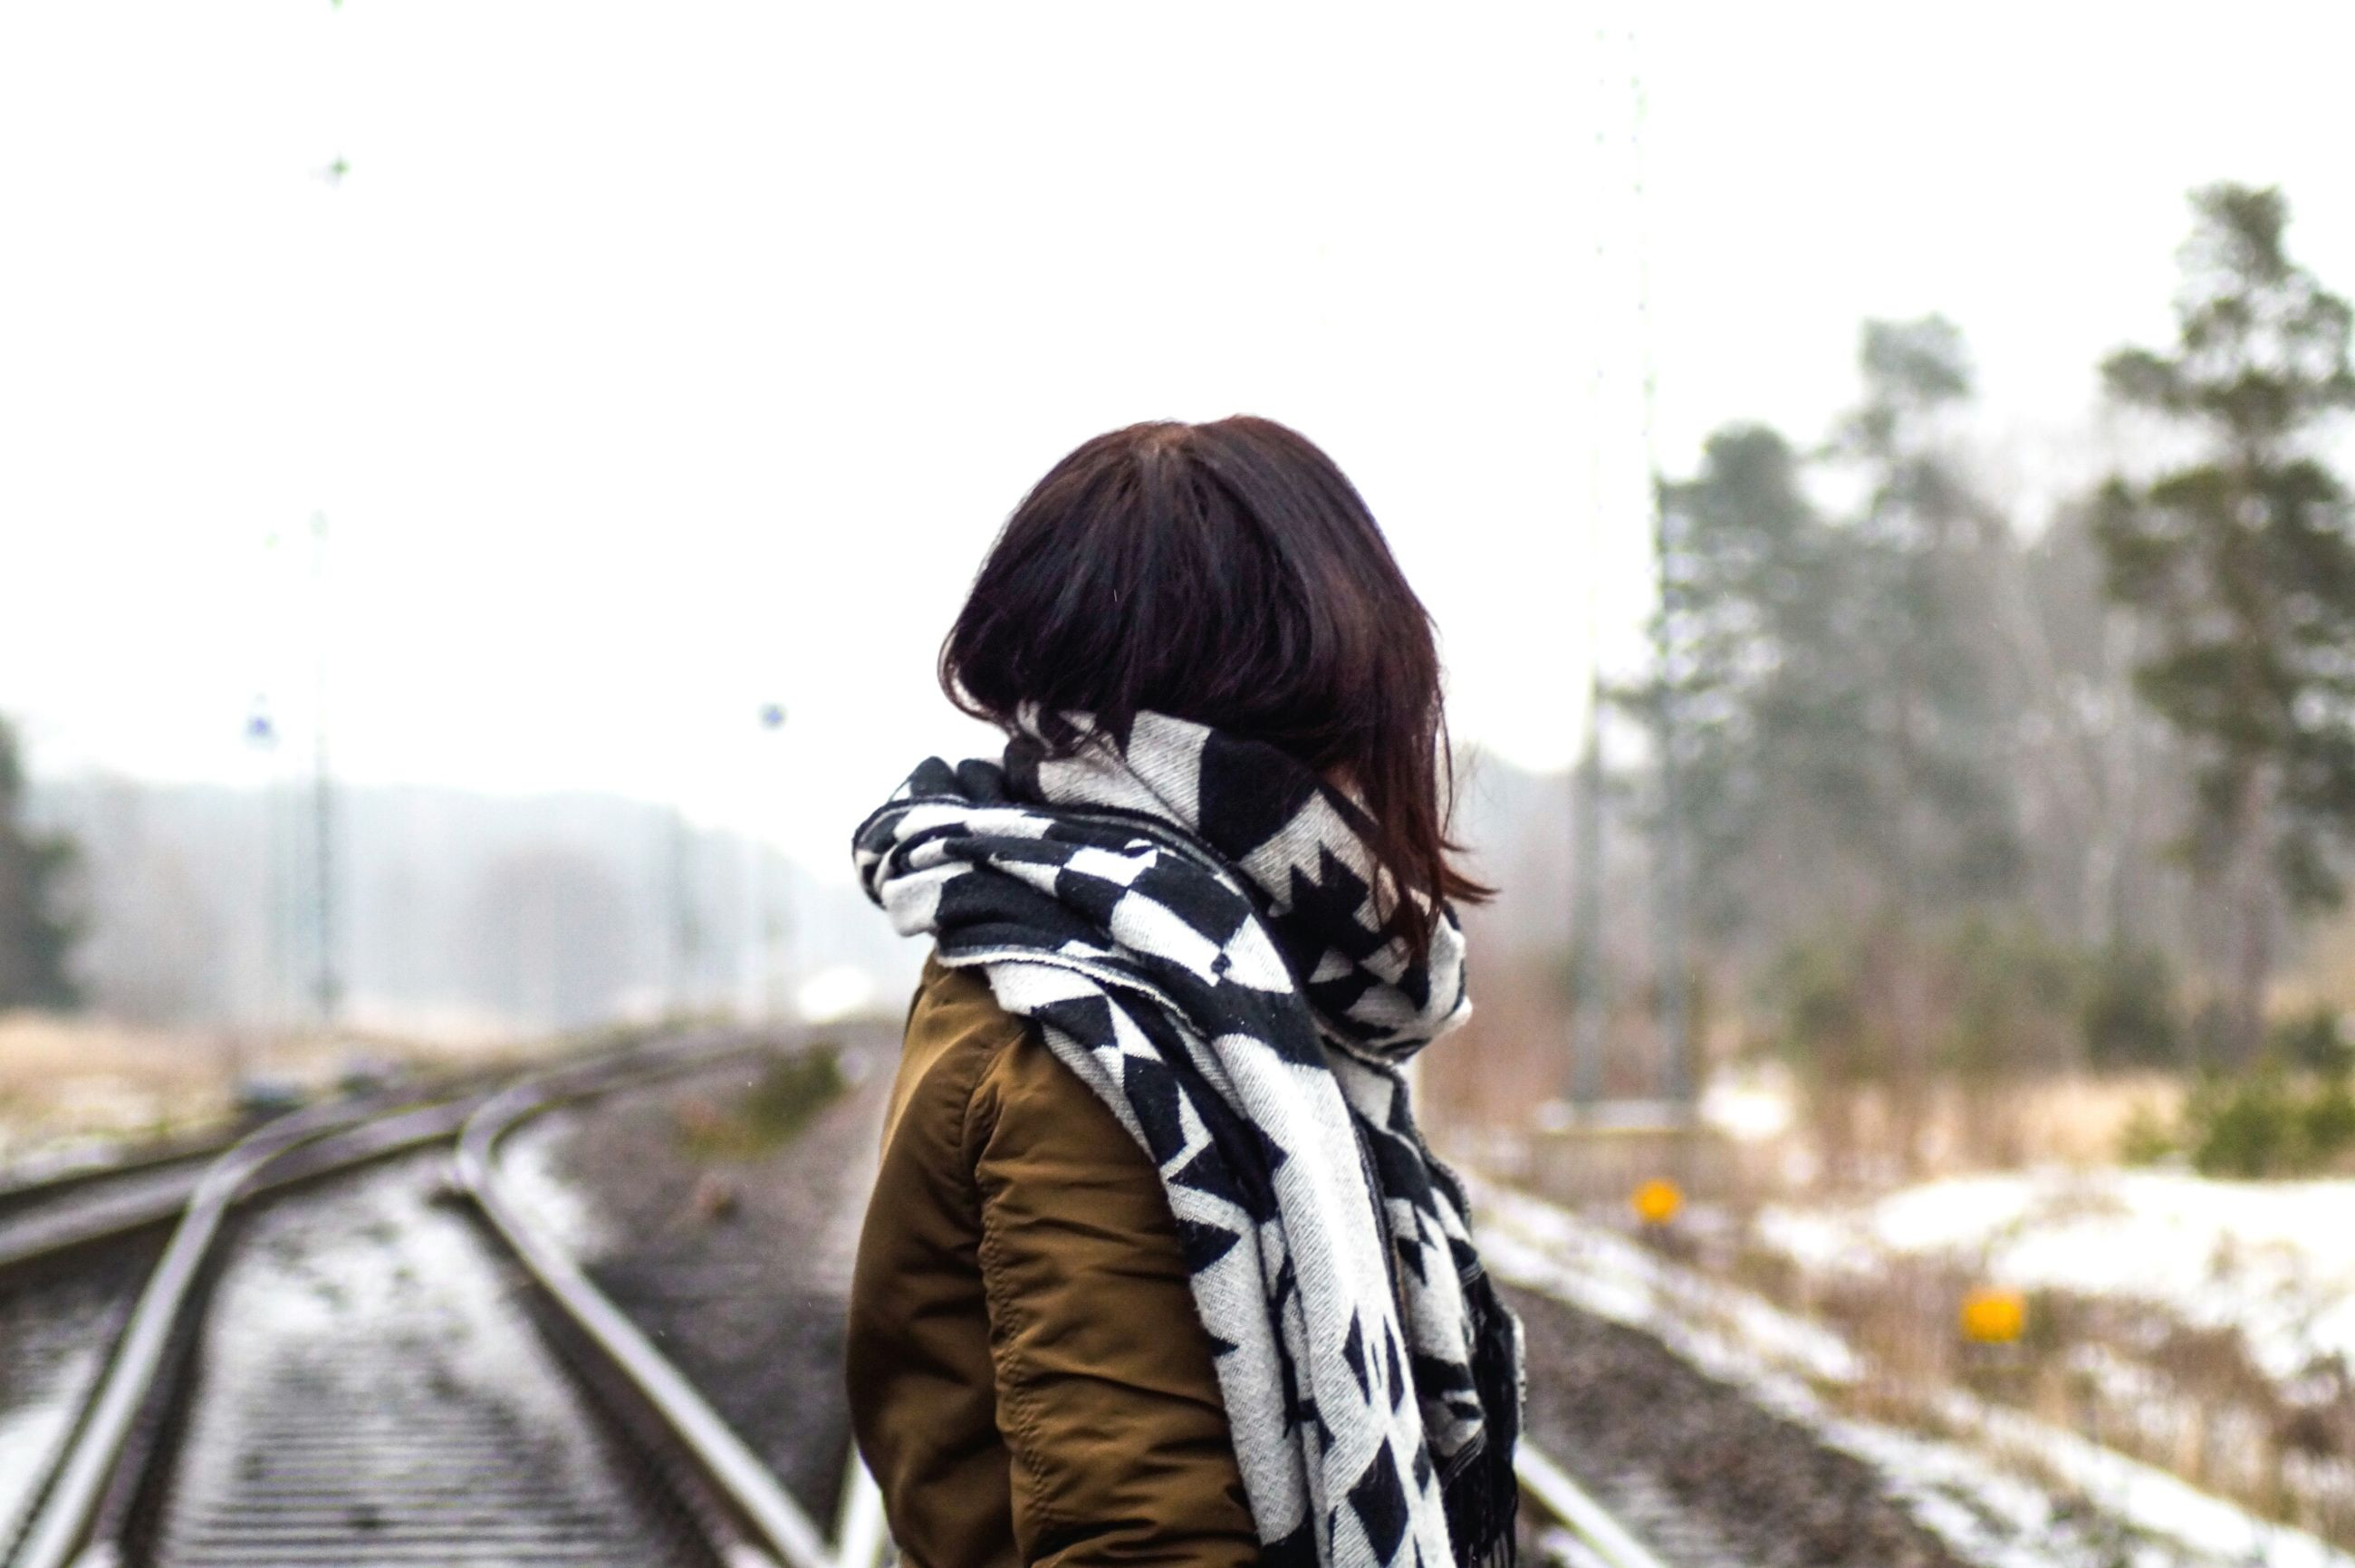 real people, one person, railroad track, rear view, sky, outdoors, day, women, adult